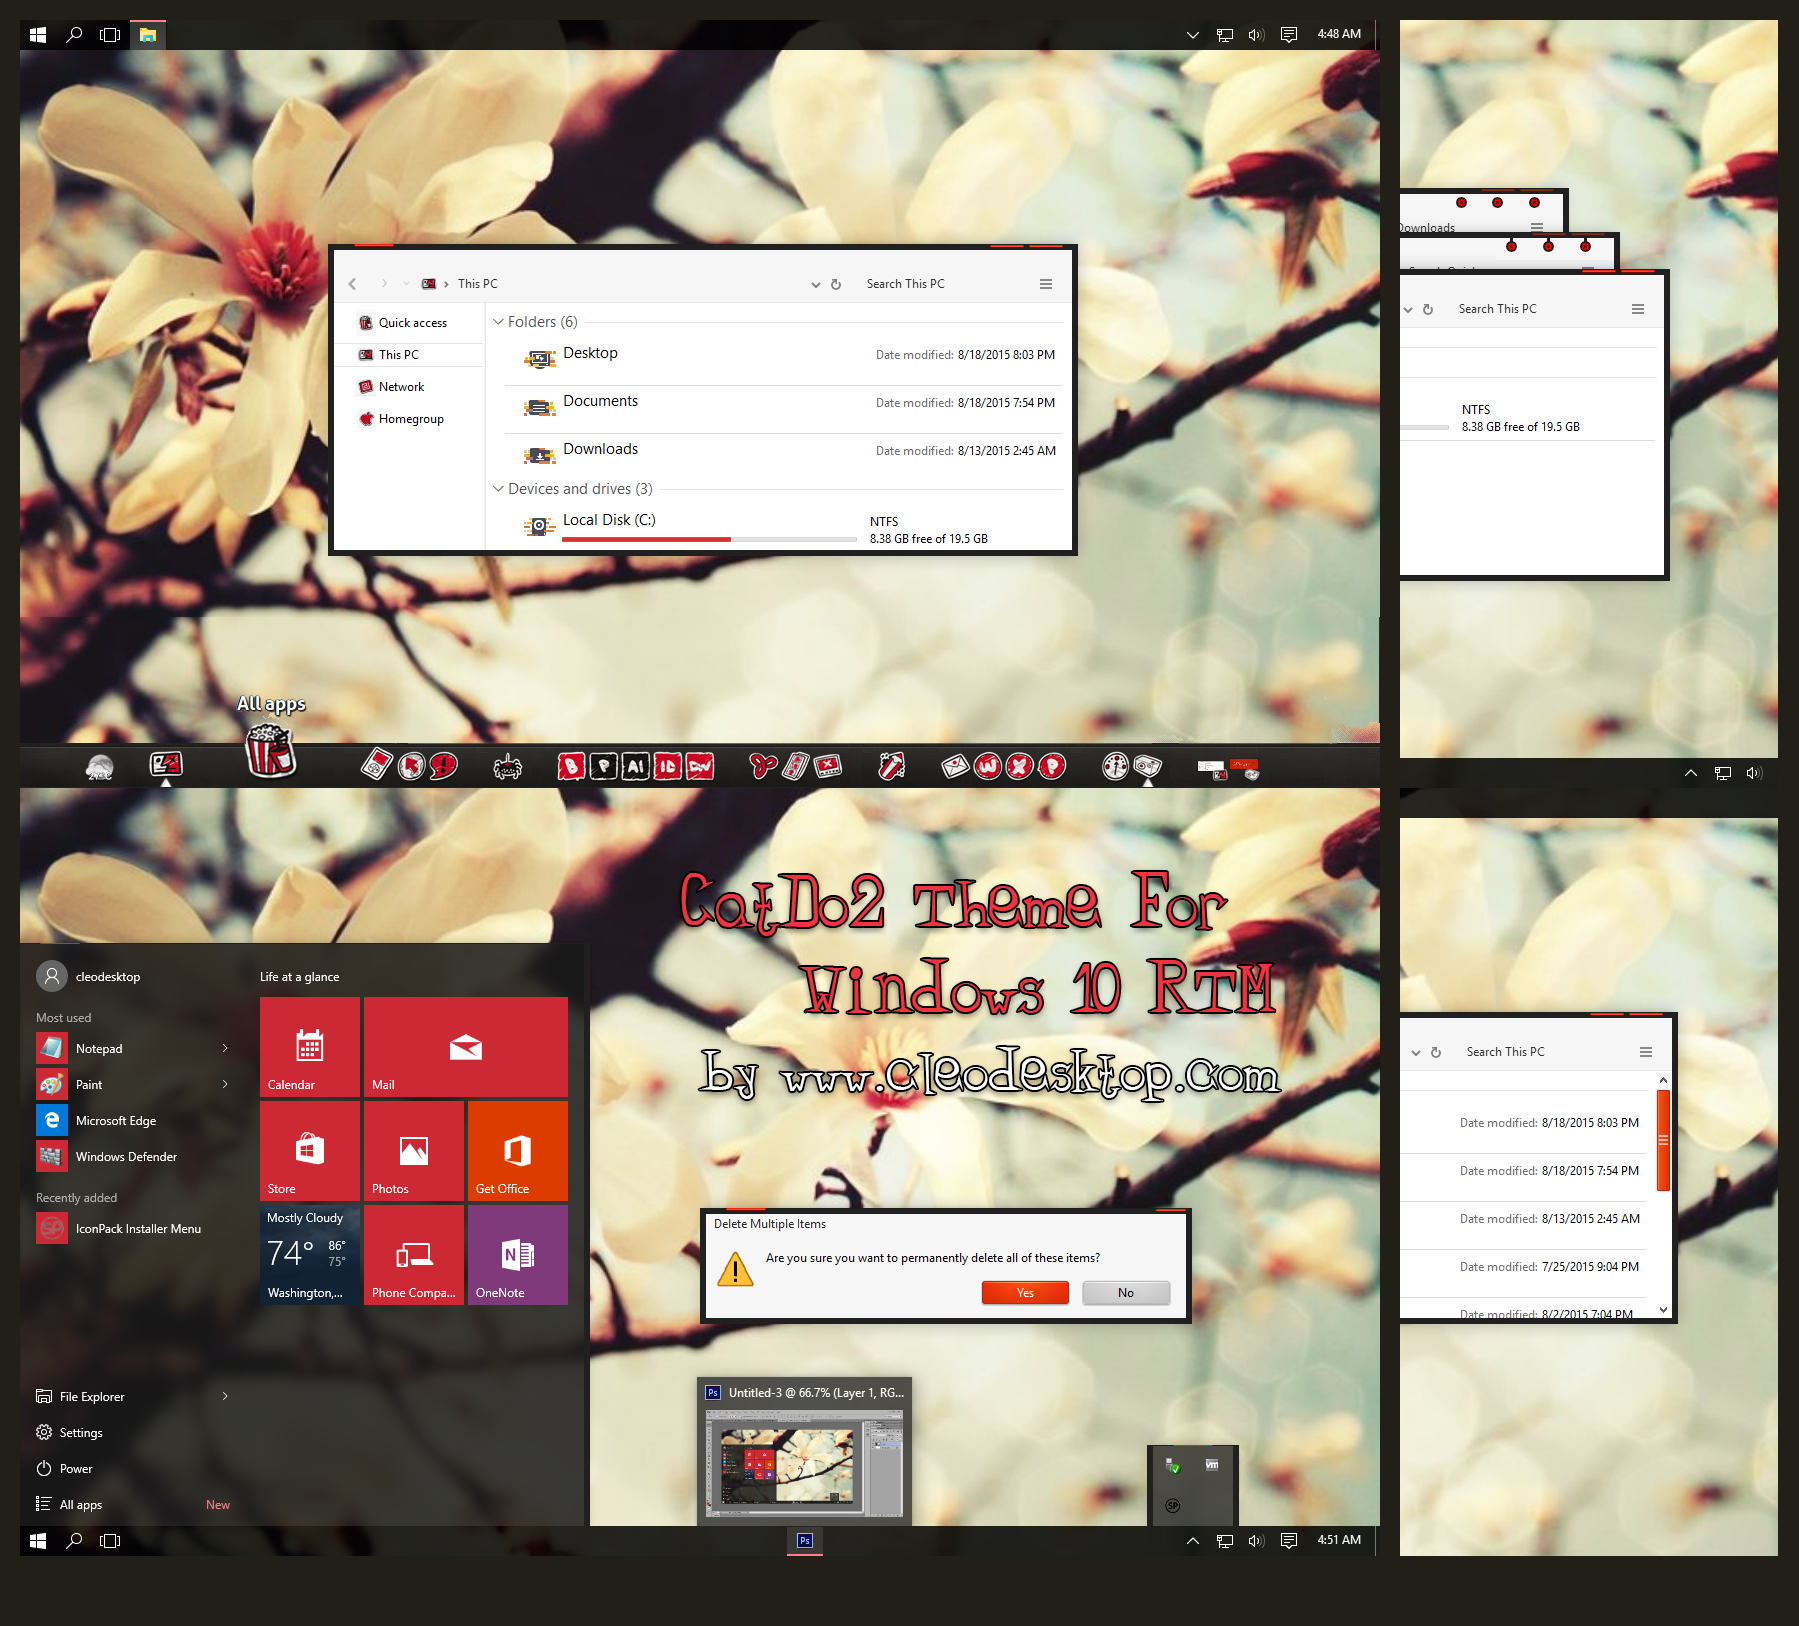 Catdo2 Theme For Windows 10 RTM